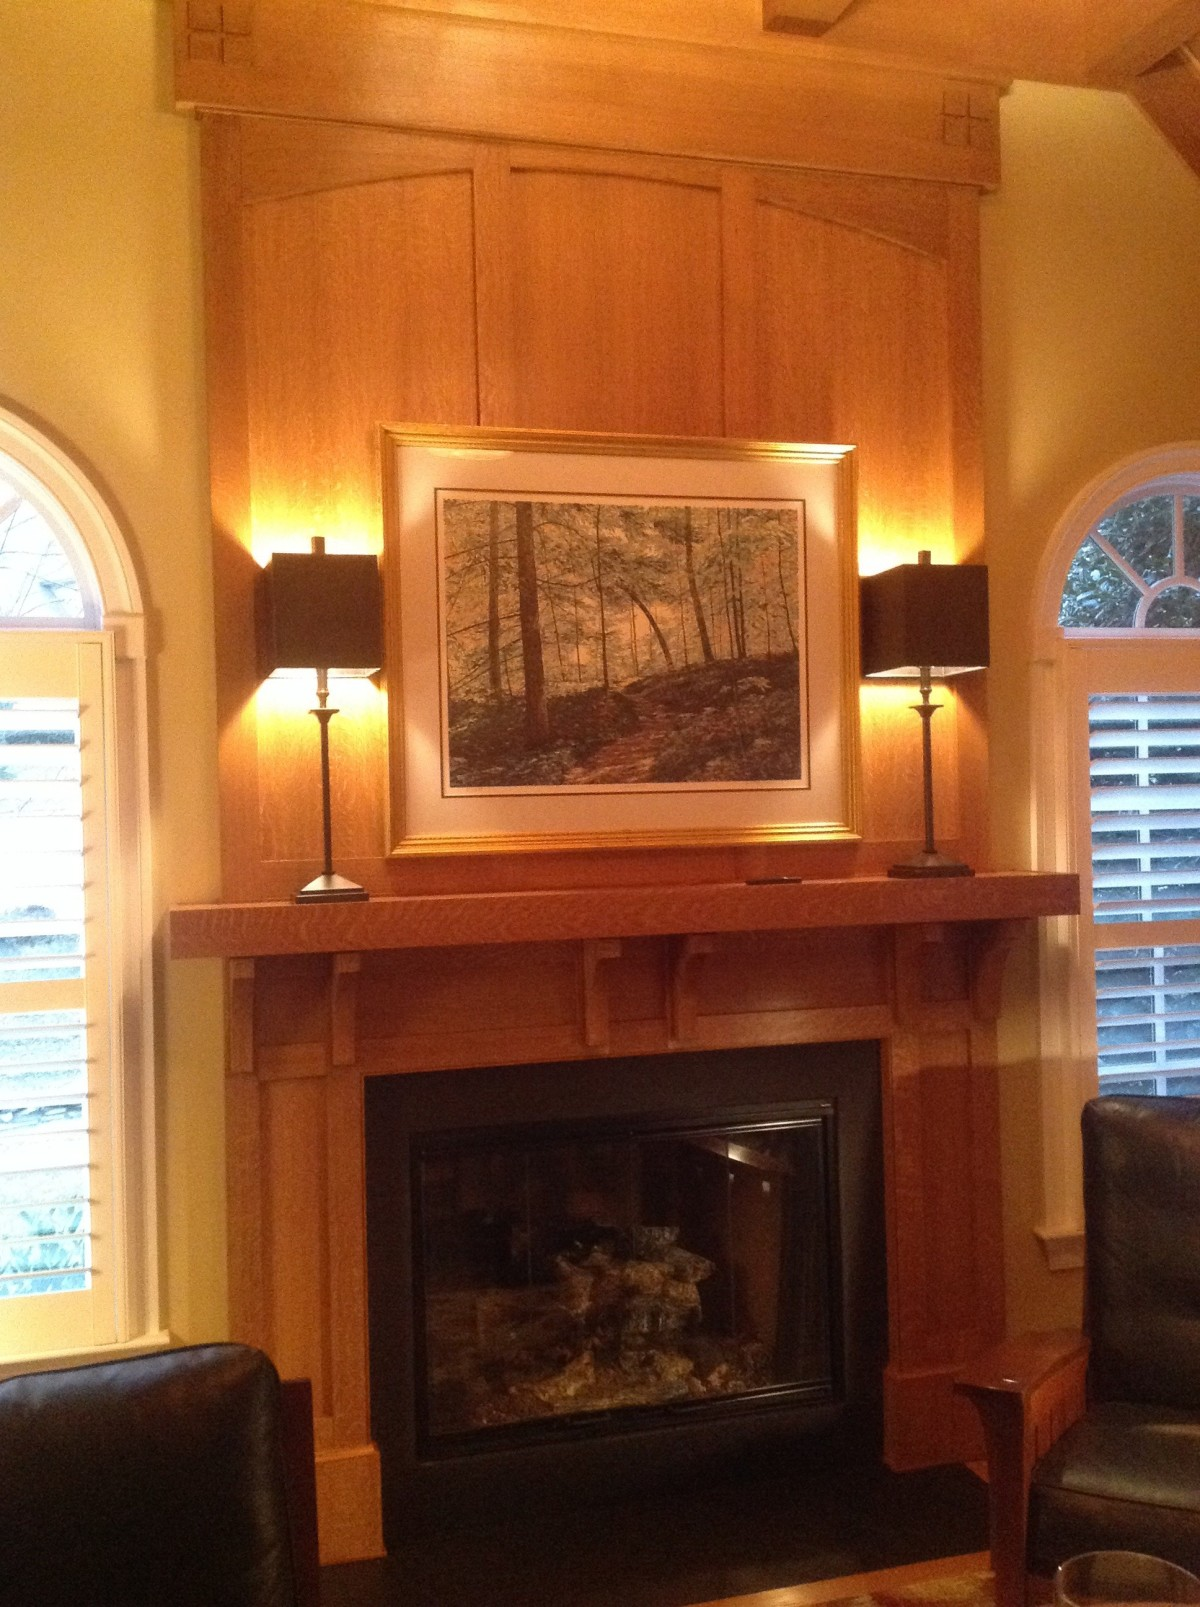 Arts and crafts mantel - Craftsman Mantel Overmantel And Ceiling